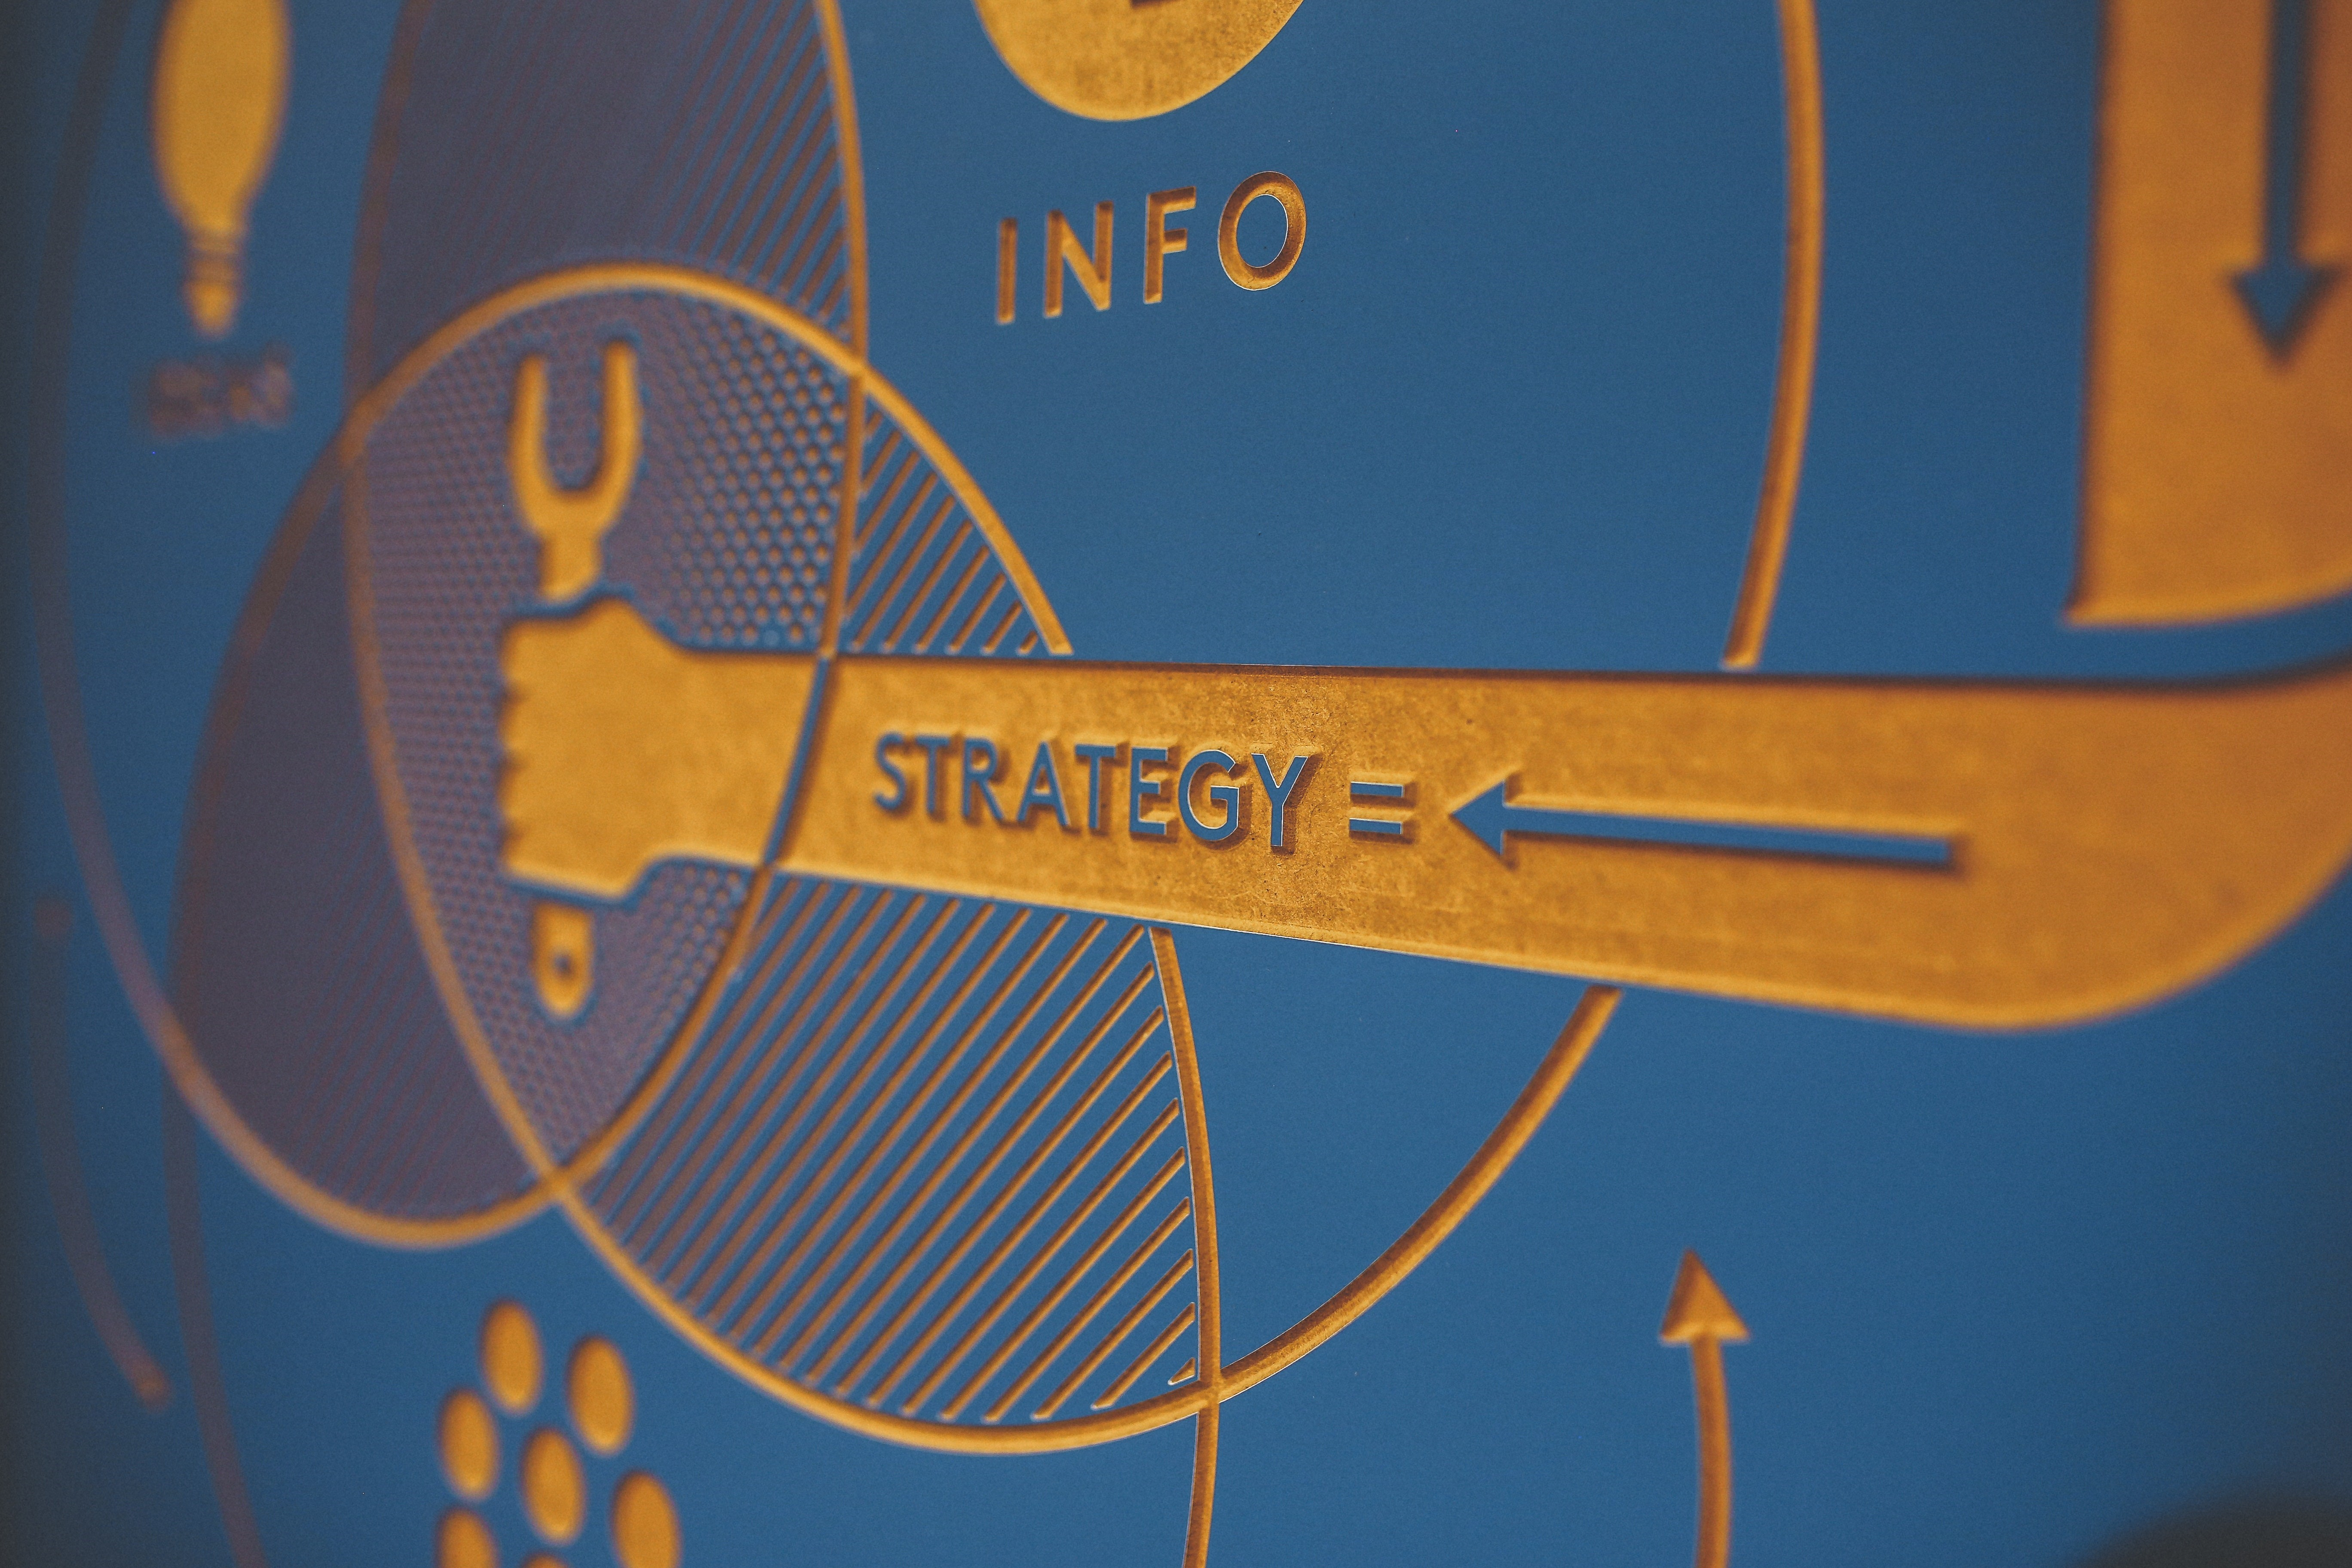 An arm holding a wrench within a venn diagram of info and ideas is using strategy to combine all the sections